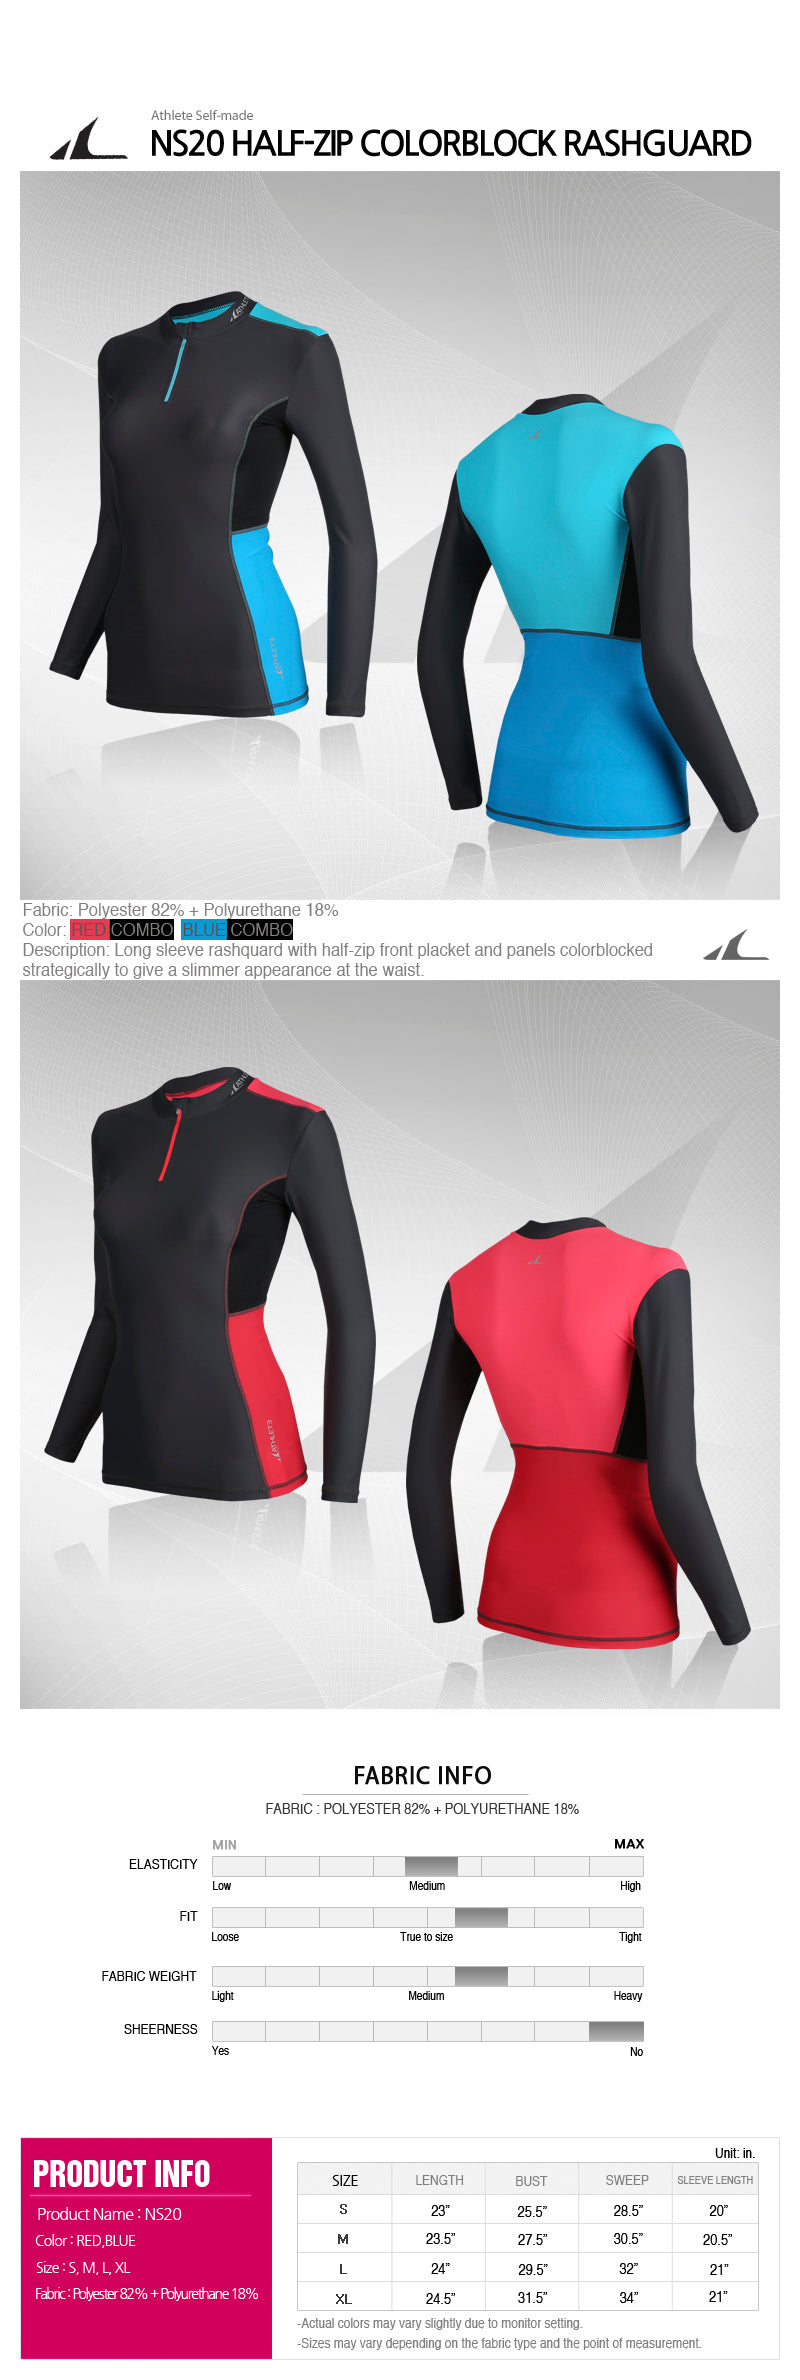 ATHLETE Women's Half-Zip Colorblock Rashguard Longsleeve Top, Style NS20